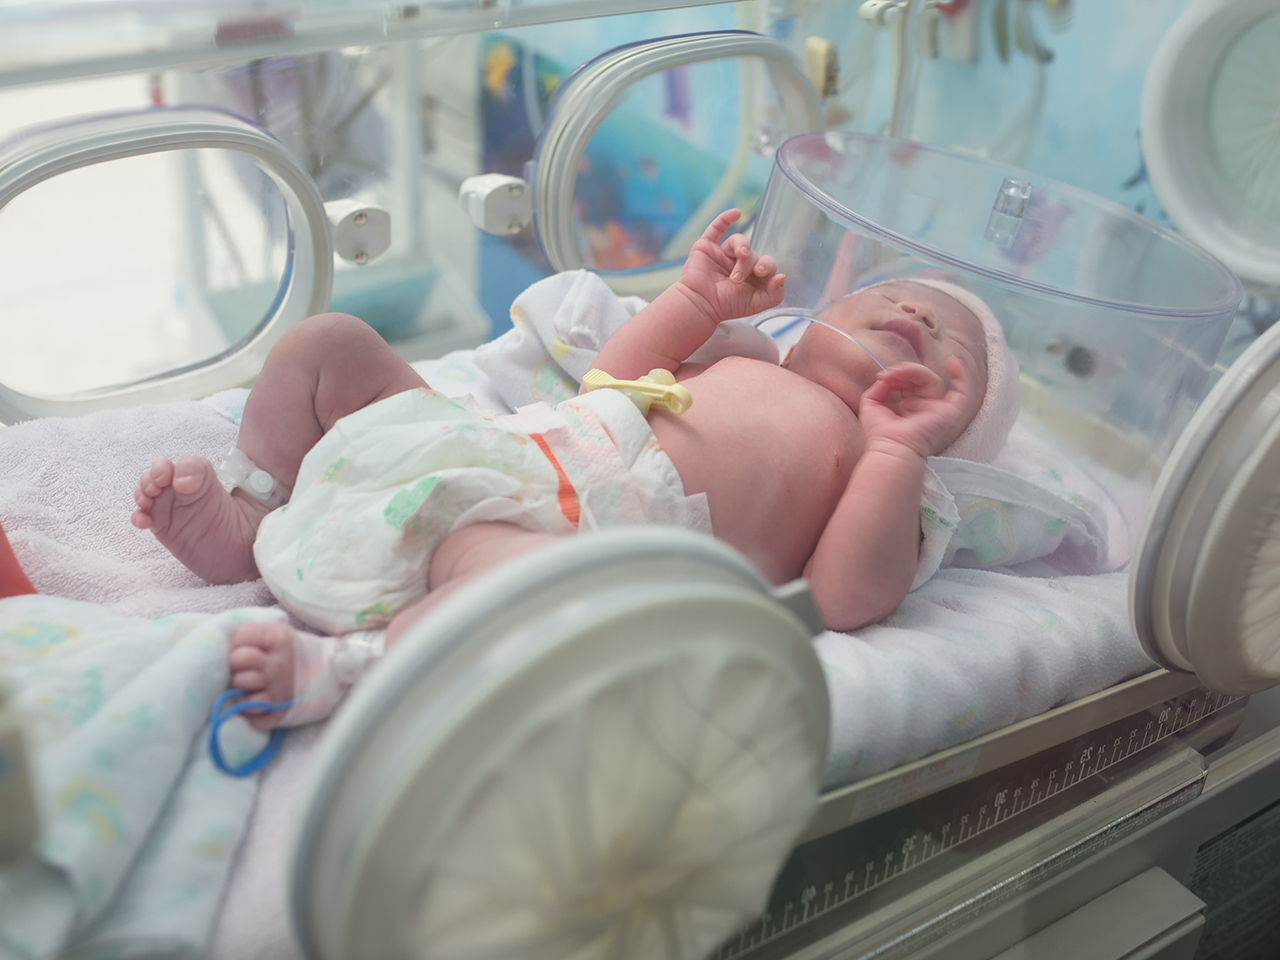 What You Should Know If You Have A Preterm Baby